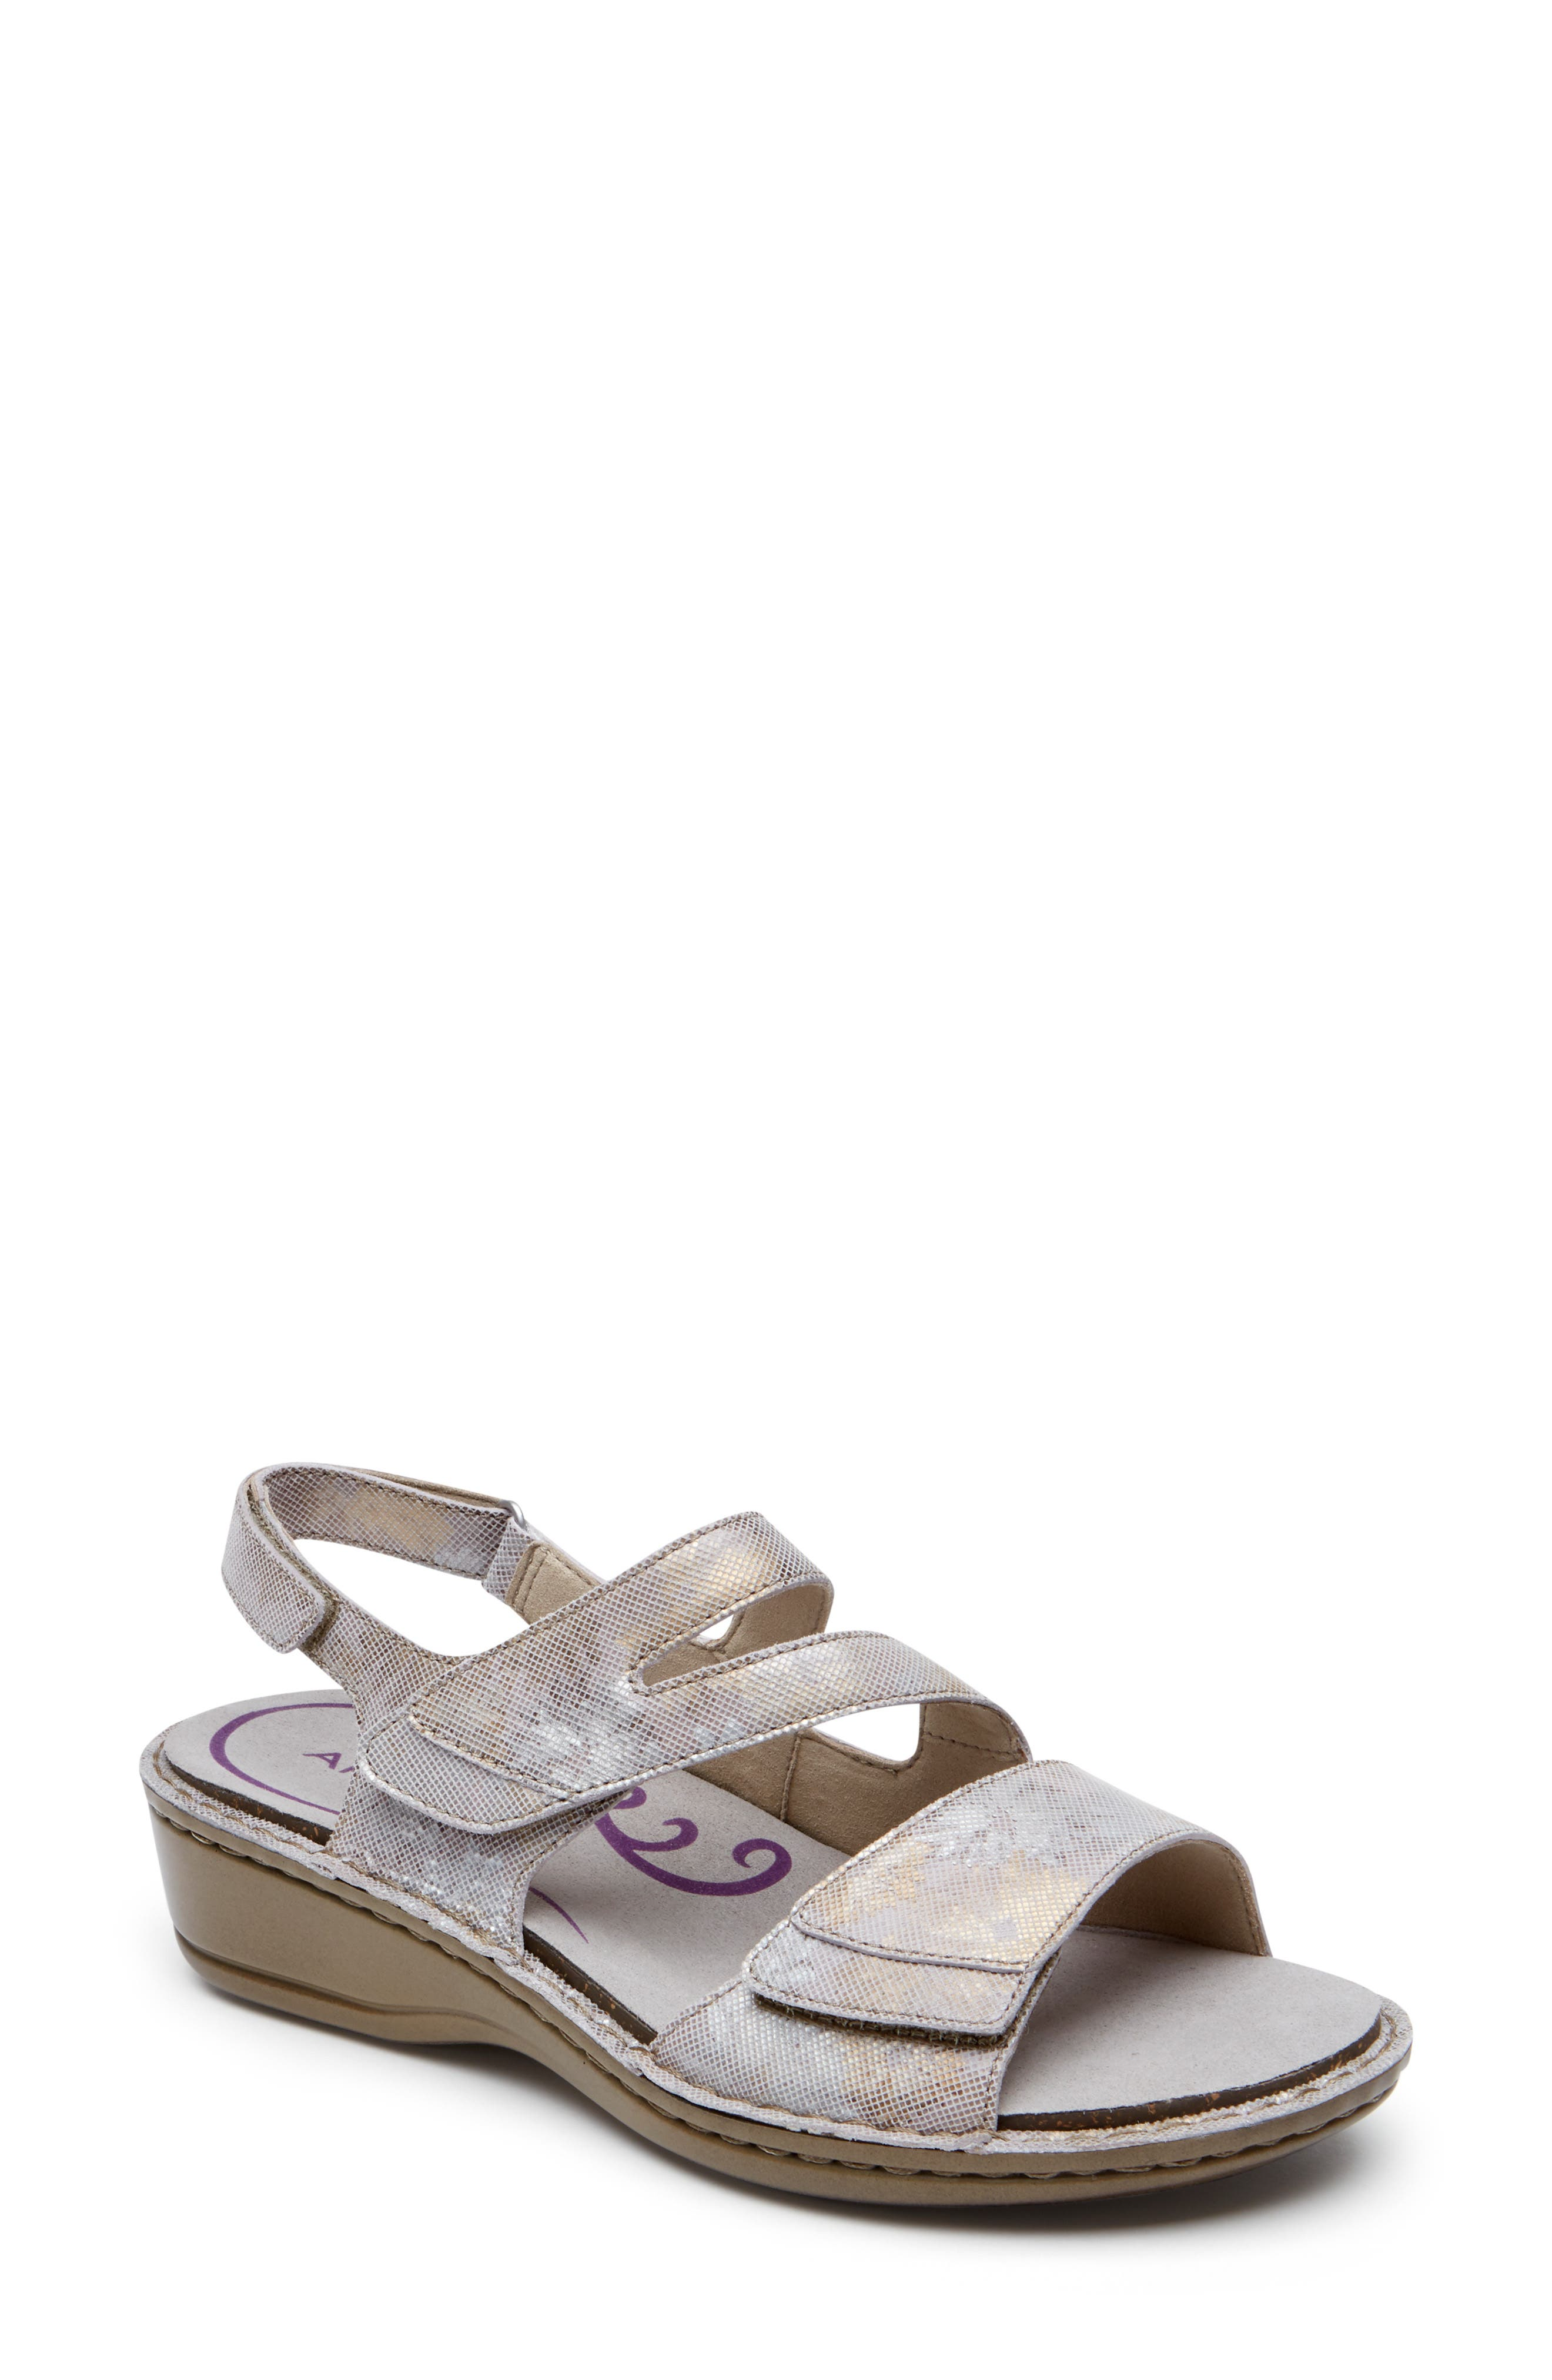 Breezy style and all-day comfort go hand-in-hand on this chic slingback sandal designed with adjustable straps and a memory-foam cushioned footbed. Style Name: Aravon Cambridge Slingback Sandal (Women). Style Number: 5815868. Available in stores.